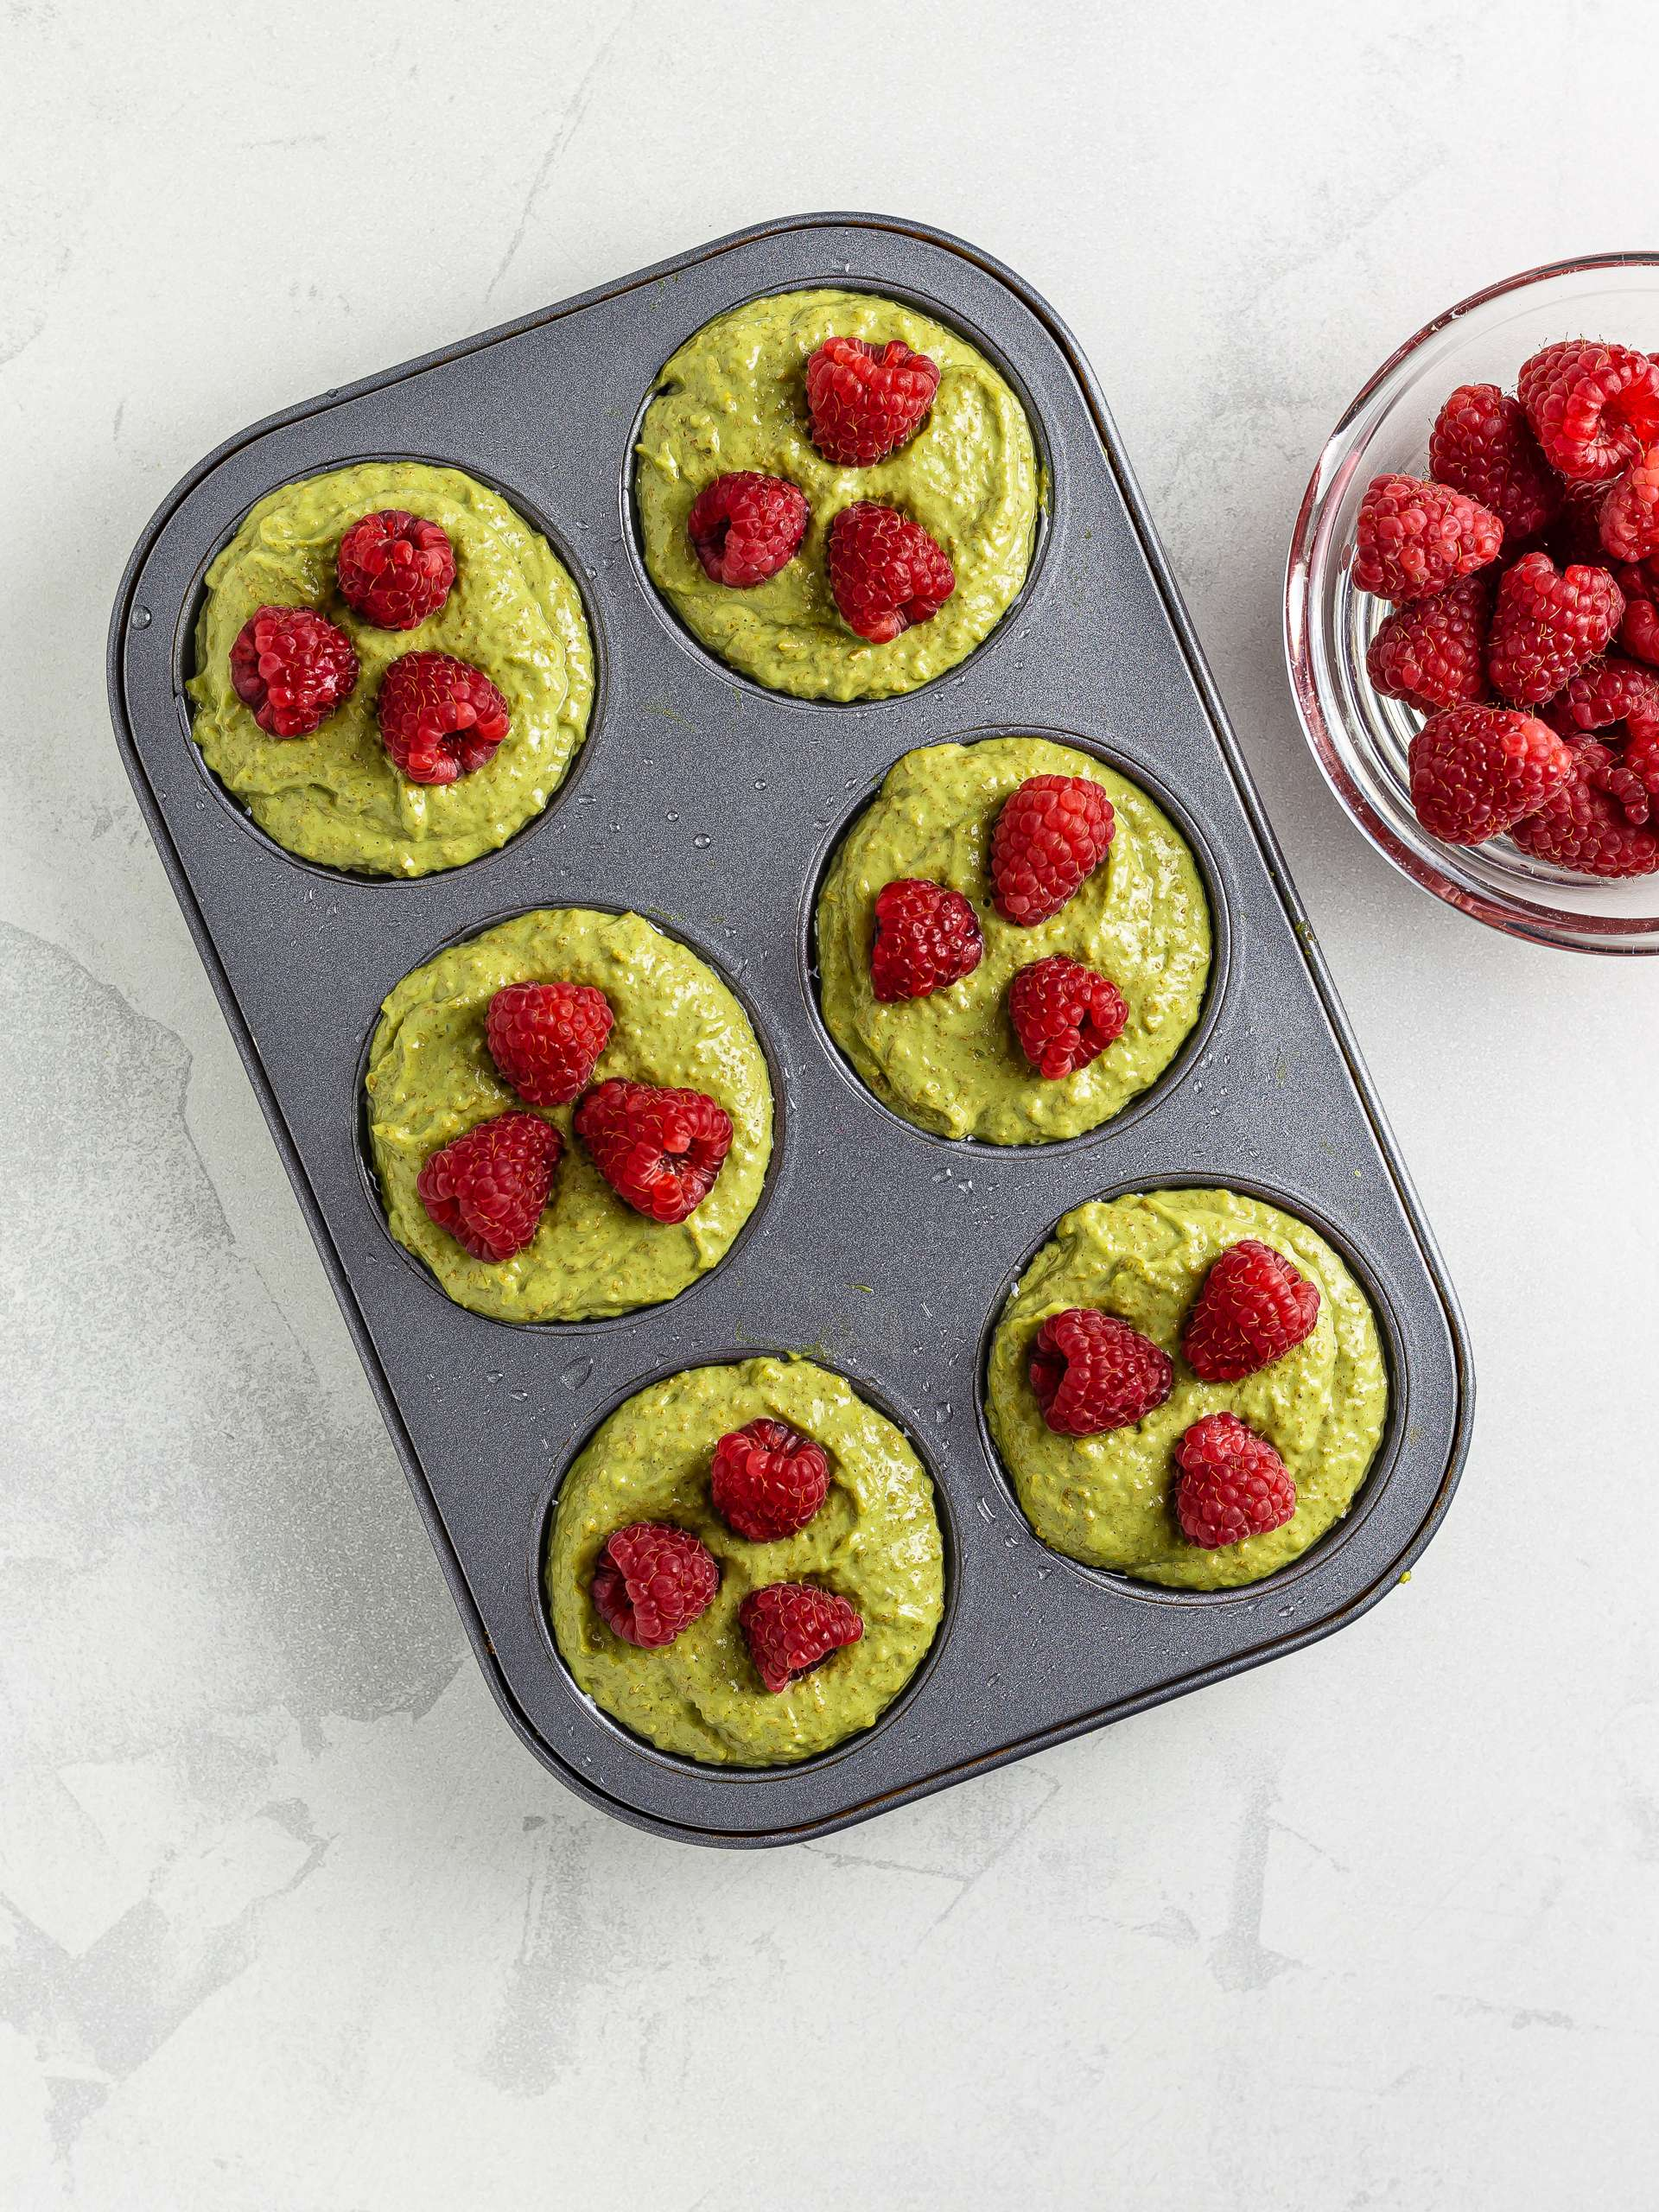 matcha muffins batter in a muffin tray with raspberries